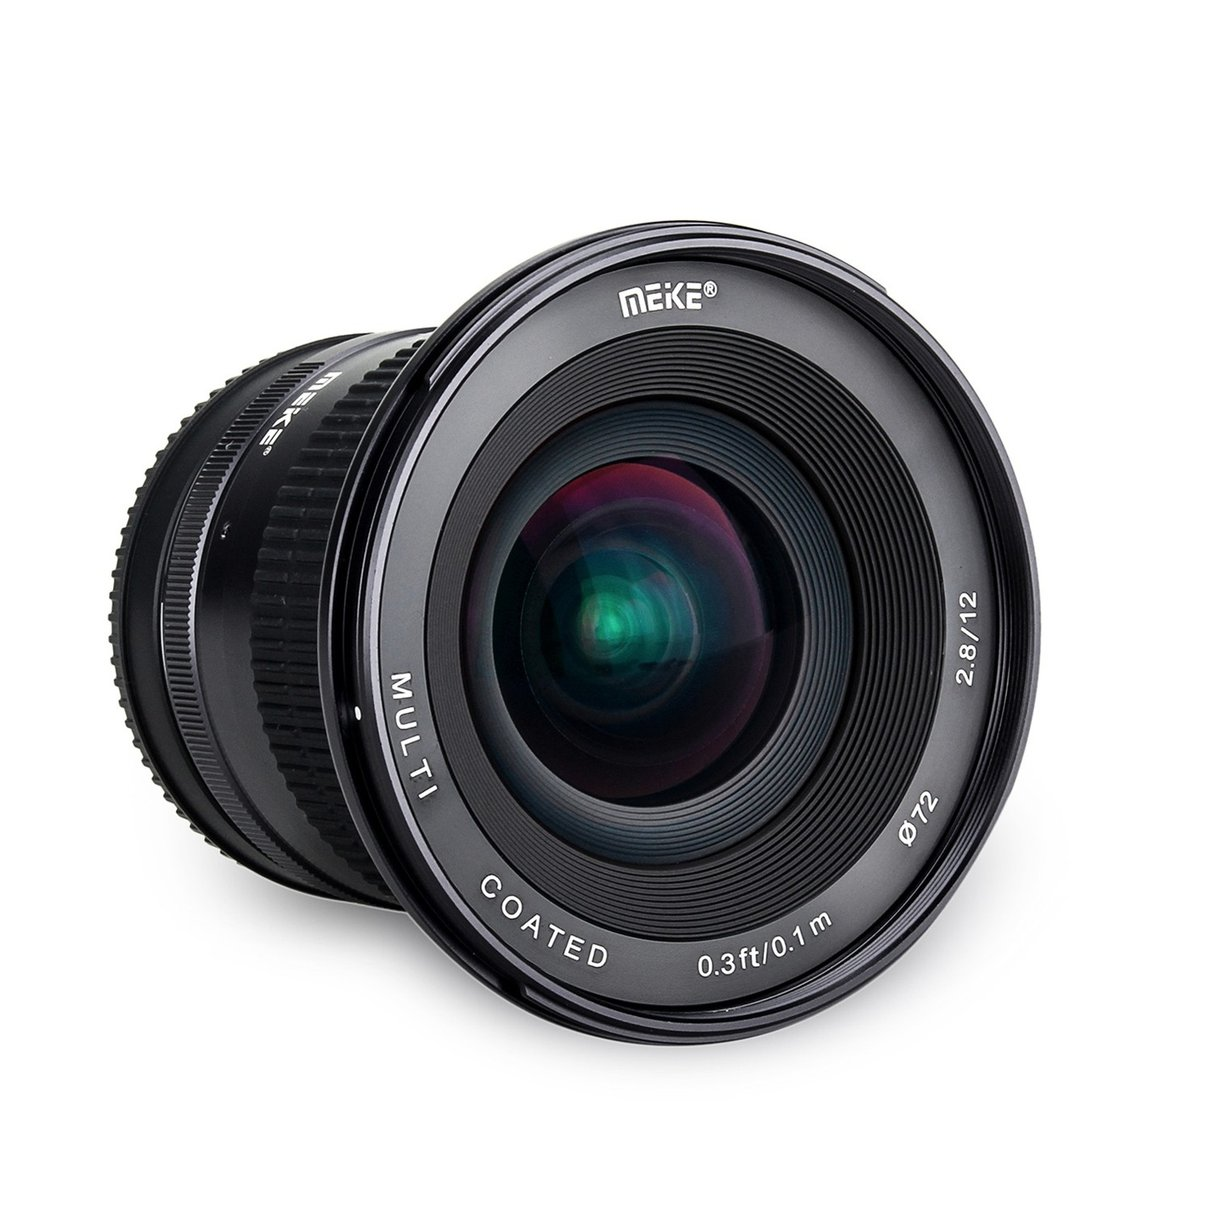 DHL Meike 12mm f/2.8 Ultra Wide Angle Fixed Lens with Removeable Hood for Sony Mirrorless E Mount Camera A7 A7S A7RIIA6000 A6300